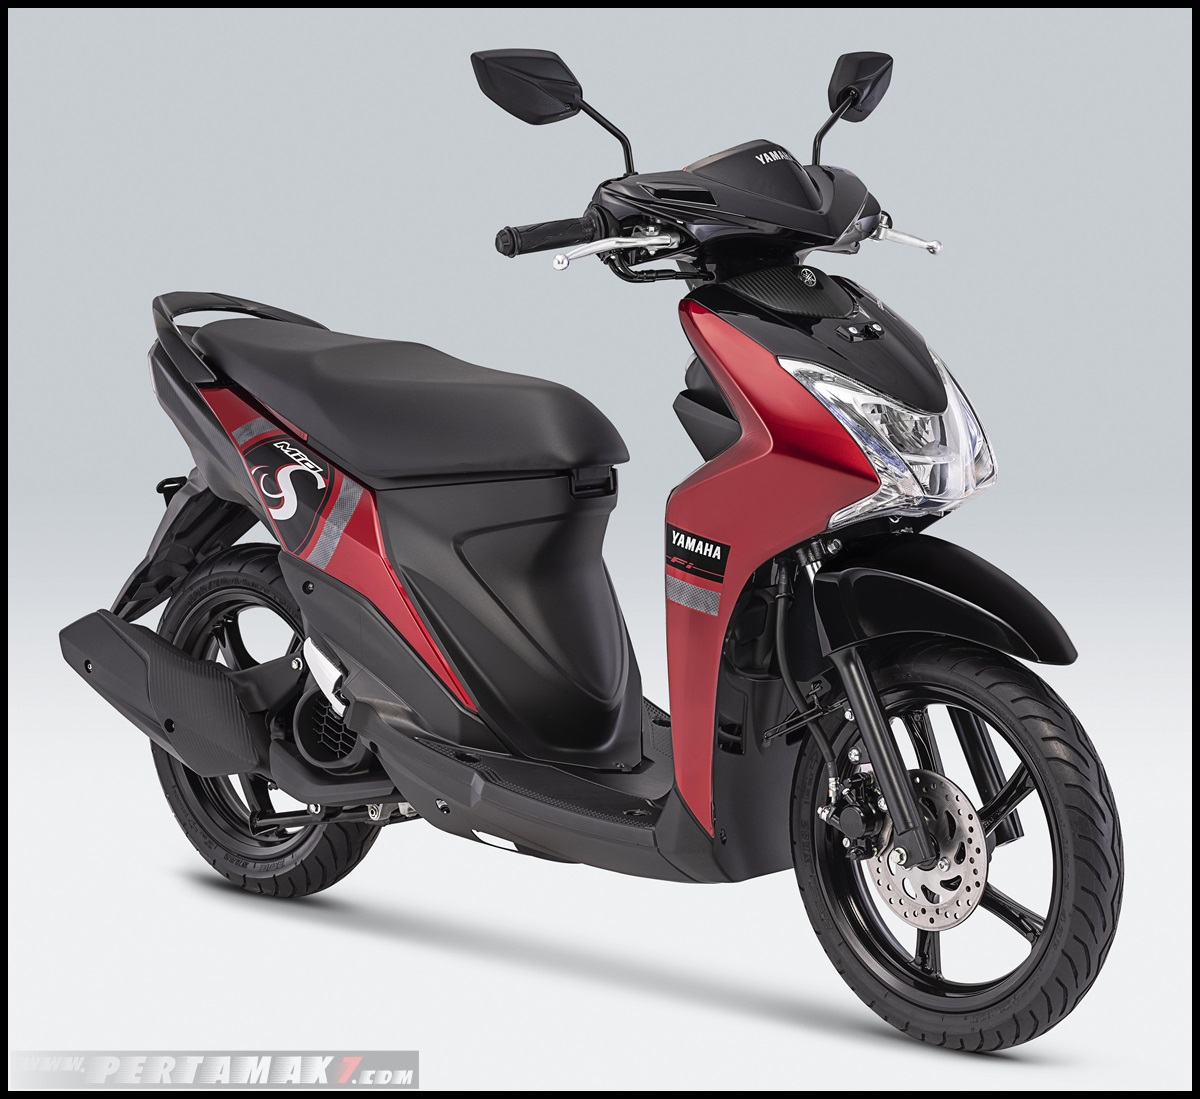 2019 Yamaha Mio S Warna Mysterious Red